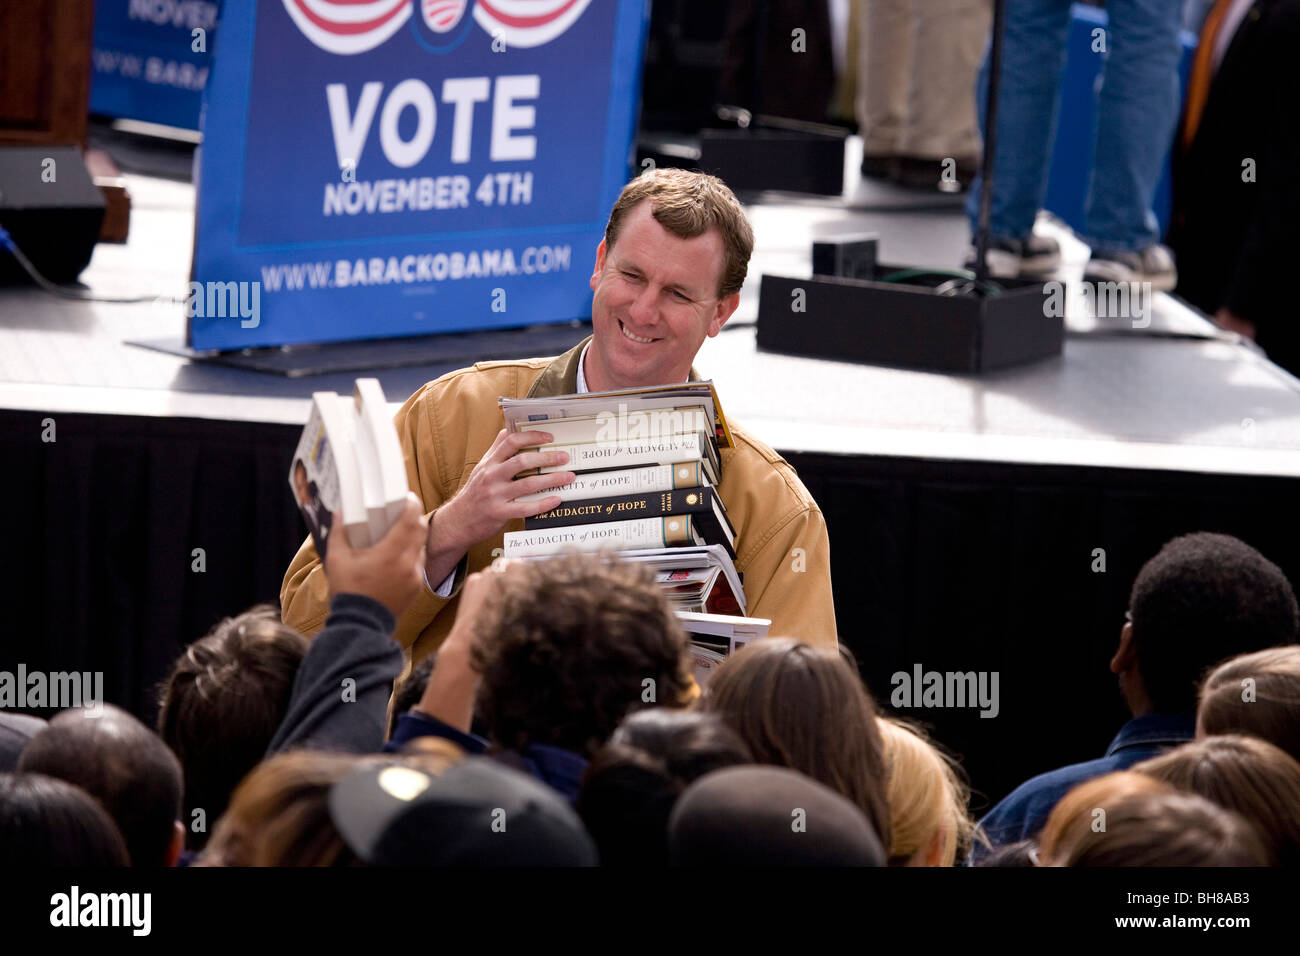 Man collects Barack Obama books to be signed at early vote for change Presidential rally, October 29, 2008 at Halifax - Stock Image